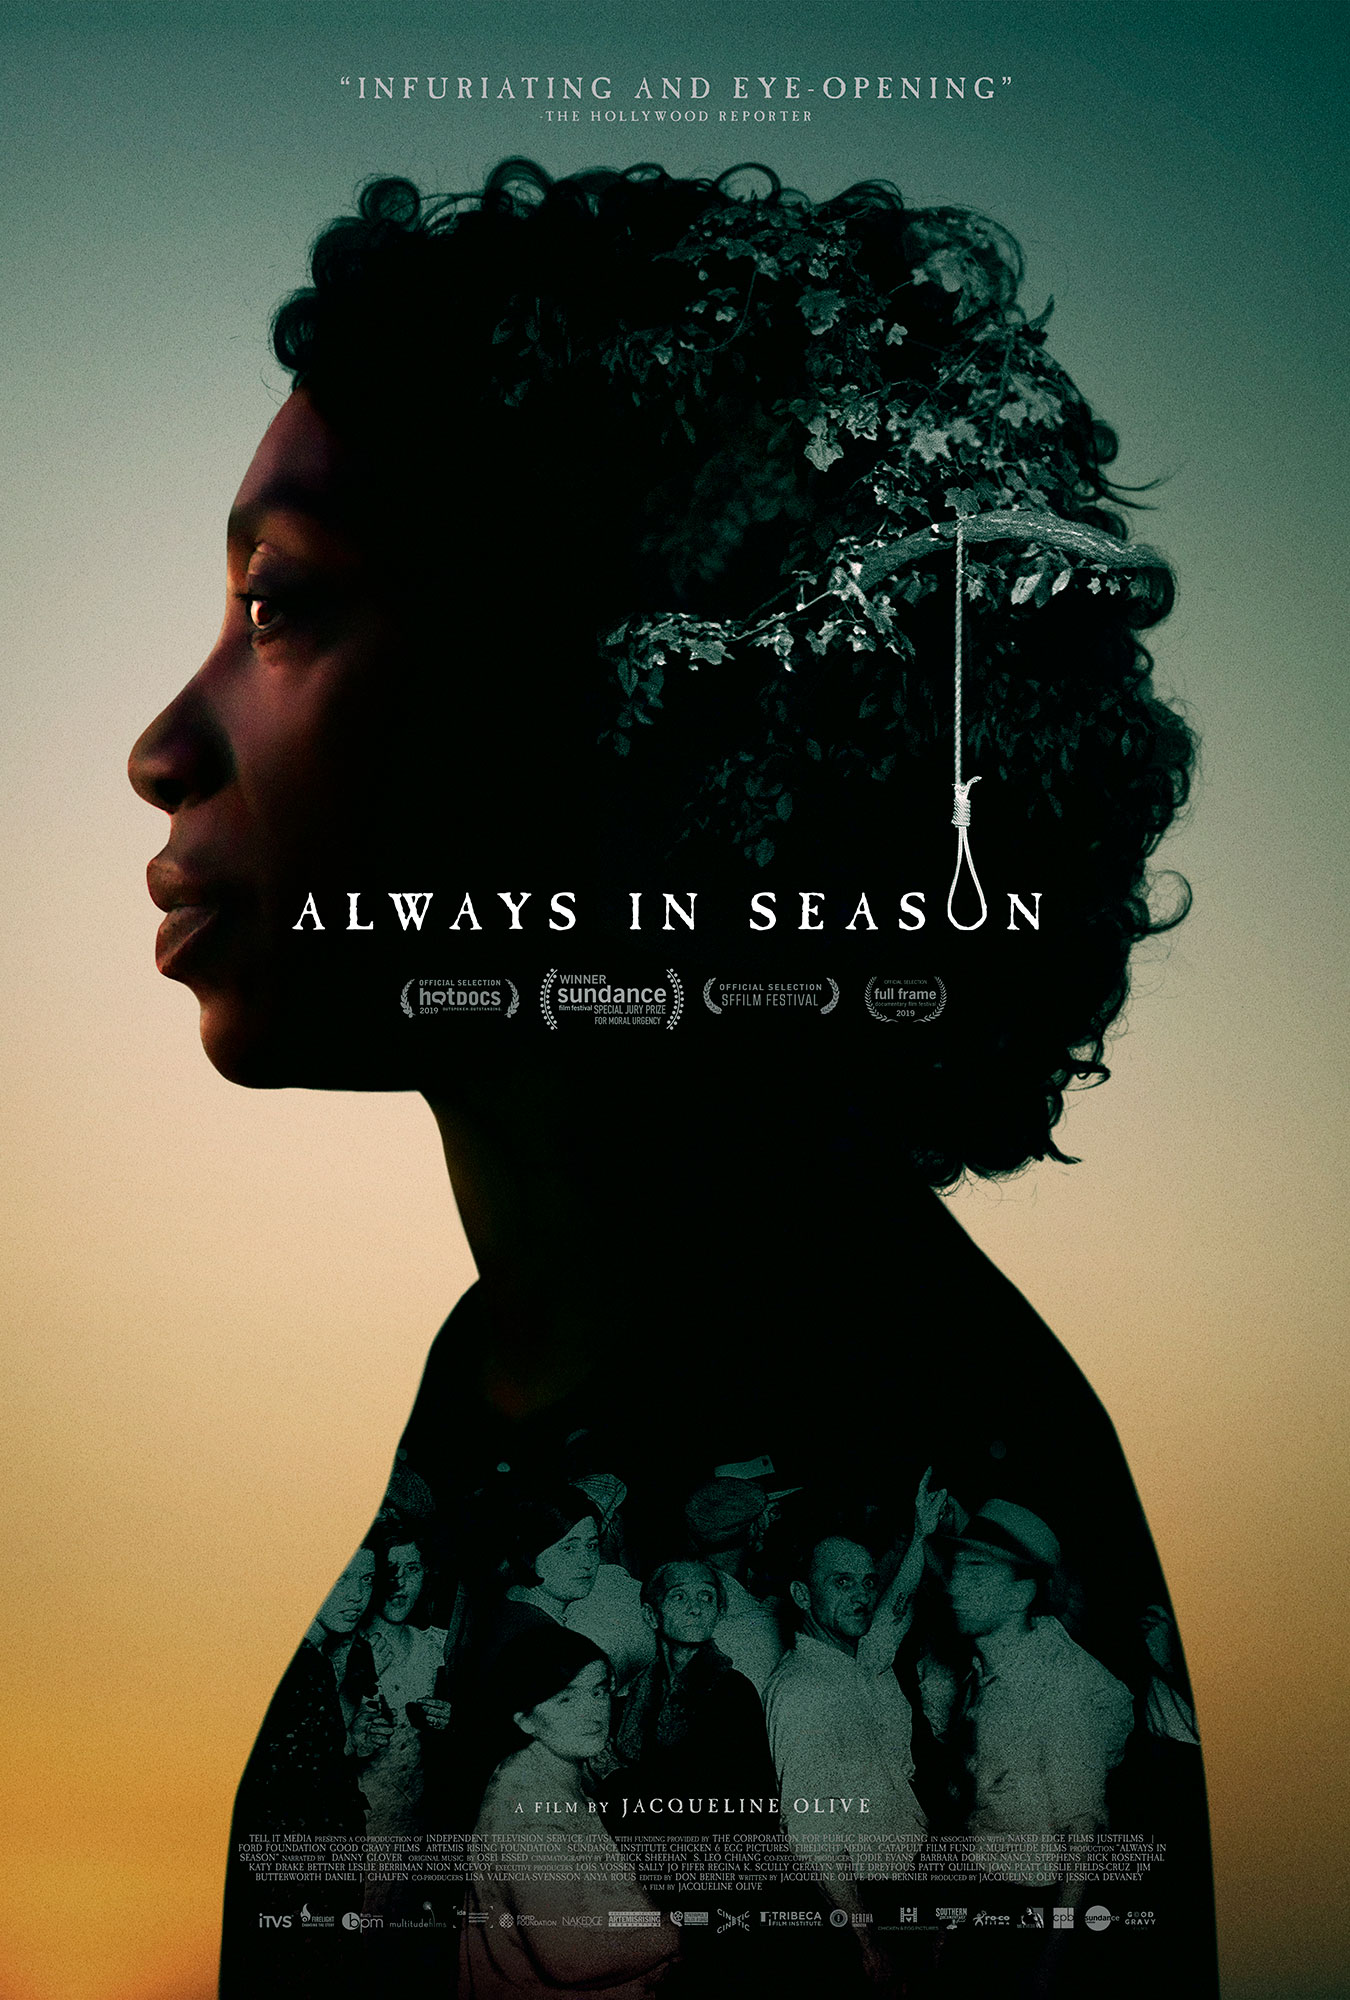 Always-in-Season-Theatrical-Poster_Web